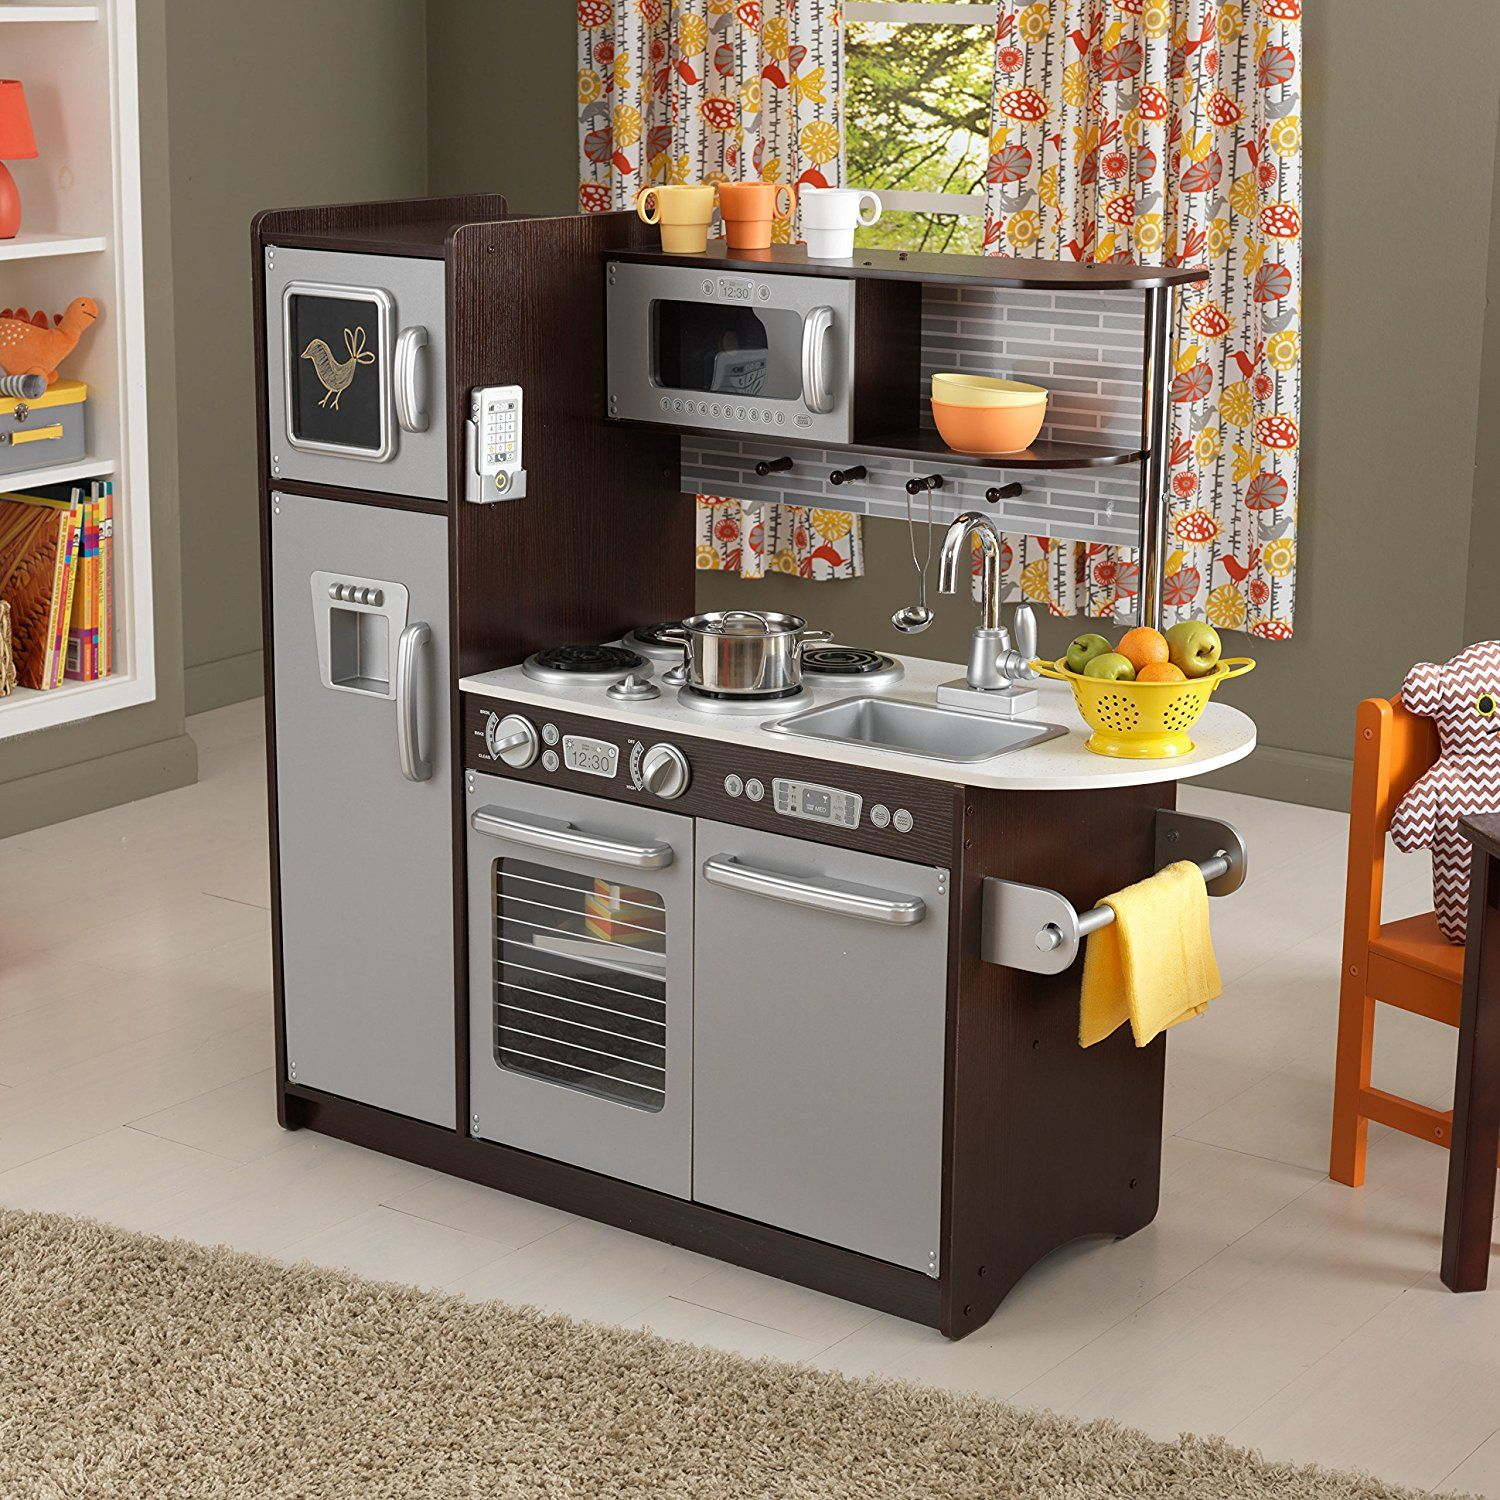 Kids kitchen sets that stir the imagination kitchen sets kids